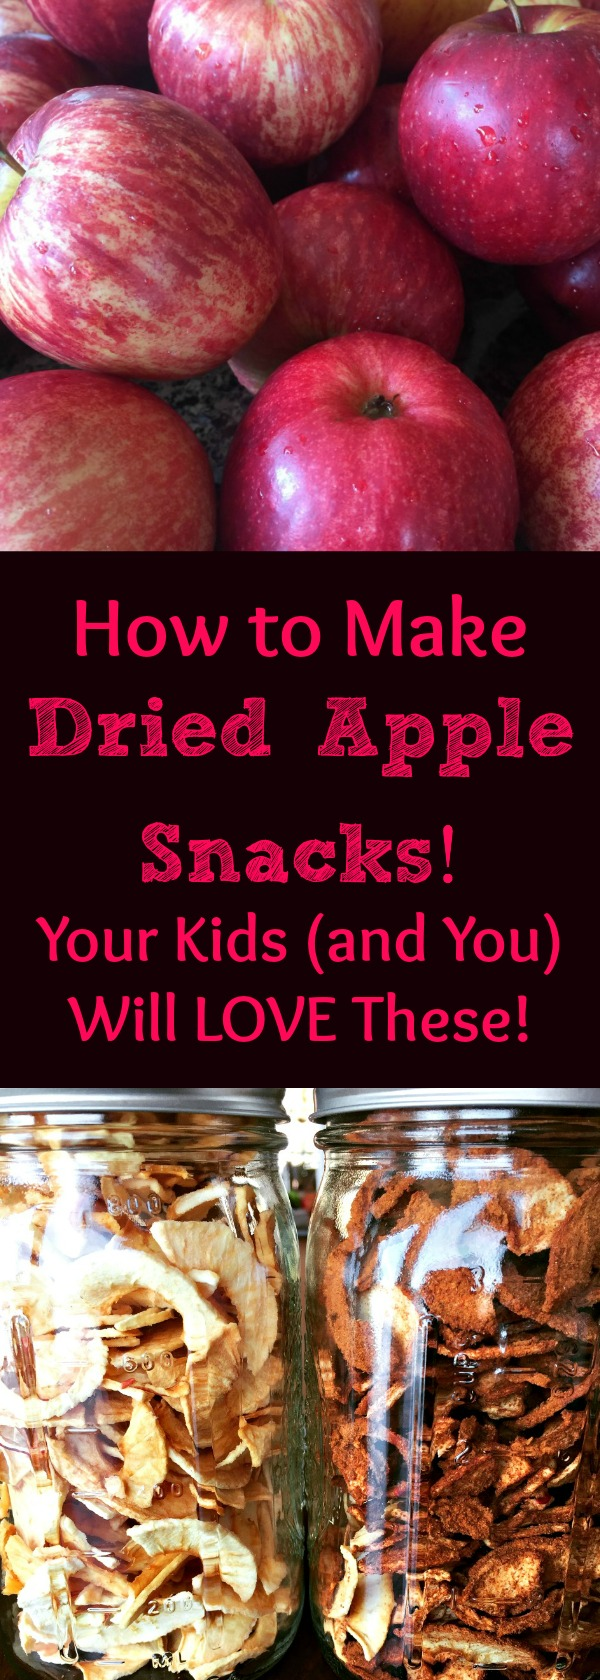 Dried apples are the BEST snacks for kids! Find out how to make dehydrated apples and cinnamon apples! Here's a quick, easy recipe and method for dehydrated apples, and you don't even need a dehydrator!